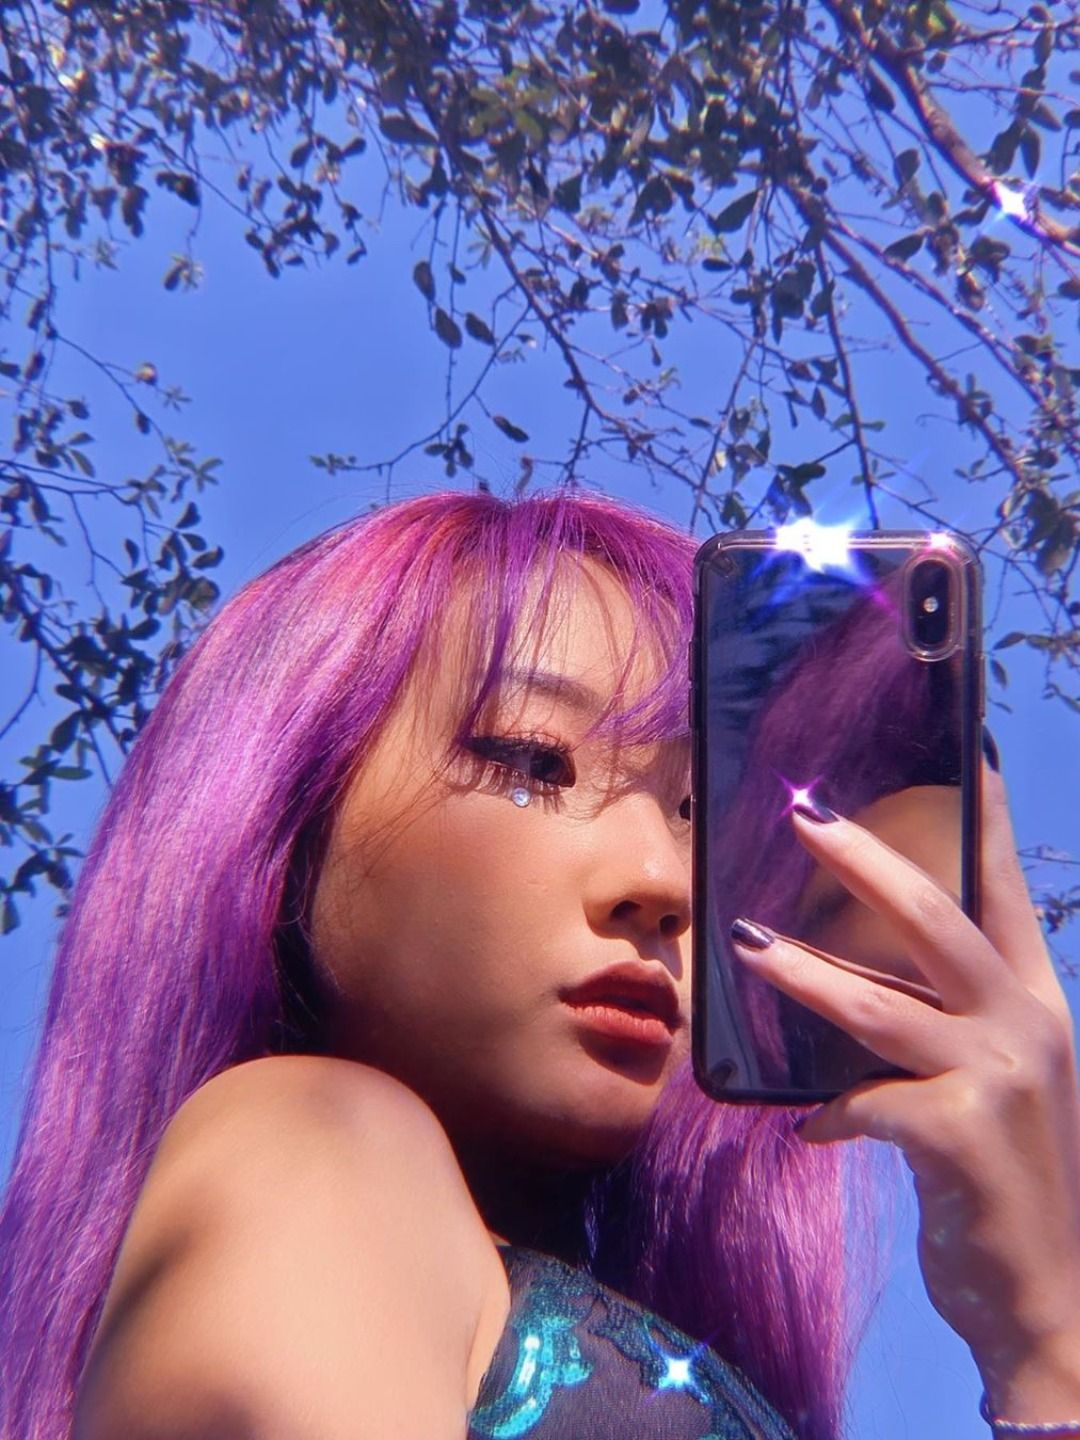 Violet Dream In 2020 Hair Streaks Aesthetic Hair Hair Inspo Color